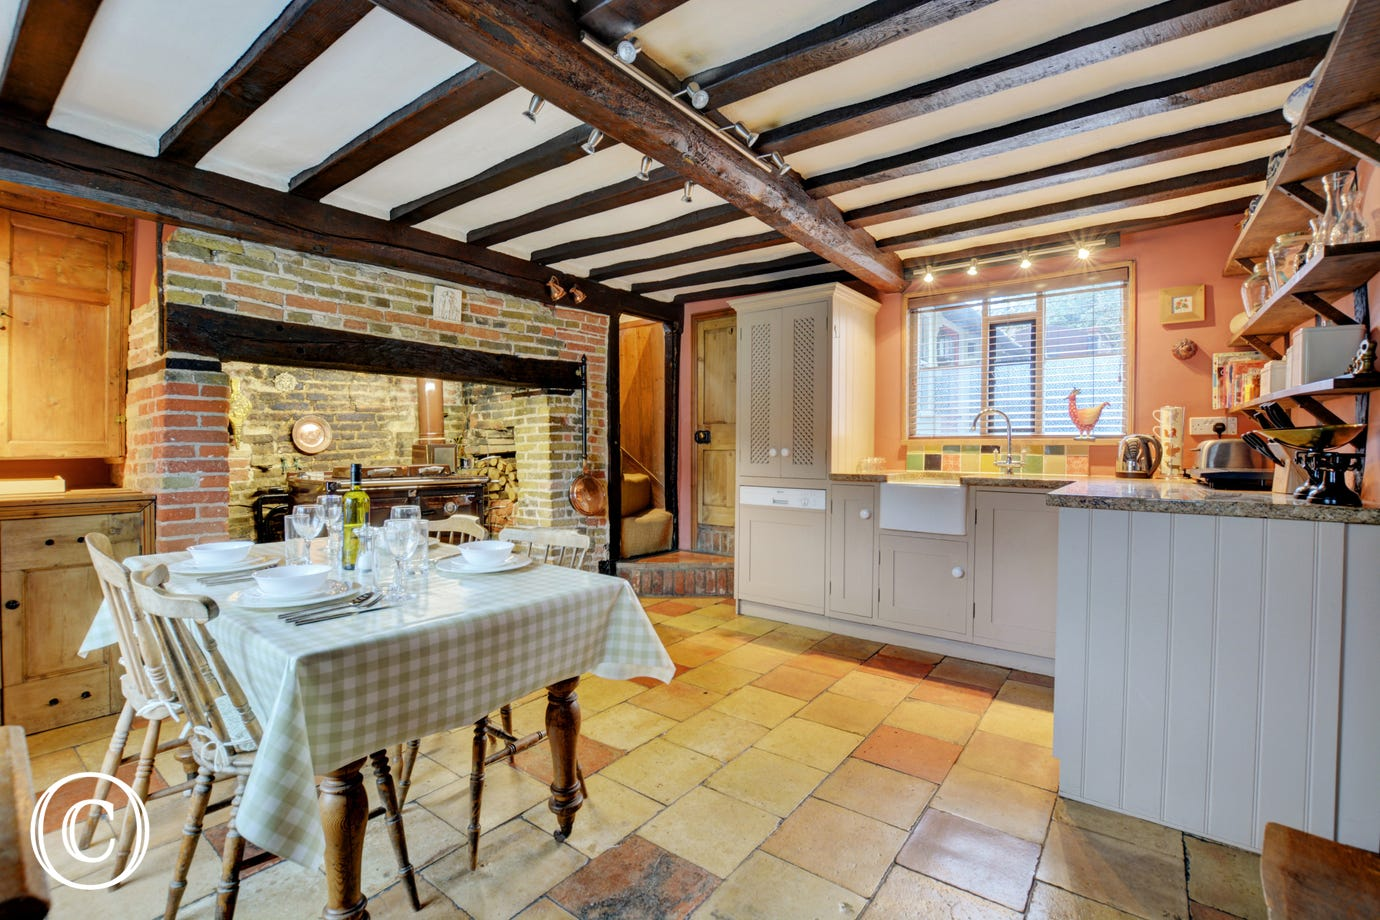 Spacious Kitchen with dining table and chairs and lots of character  - a lovely place to sit and enjoy a meal